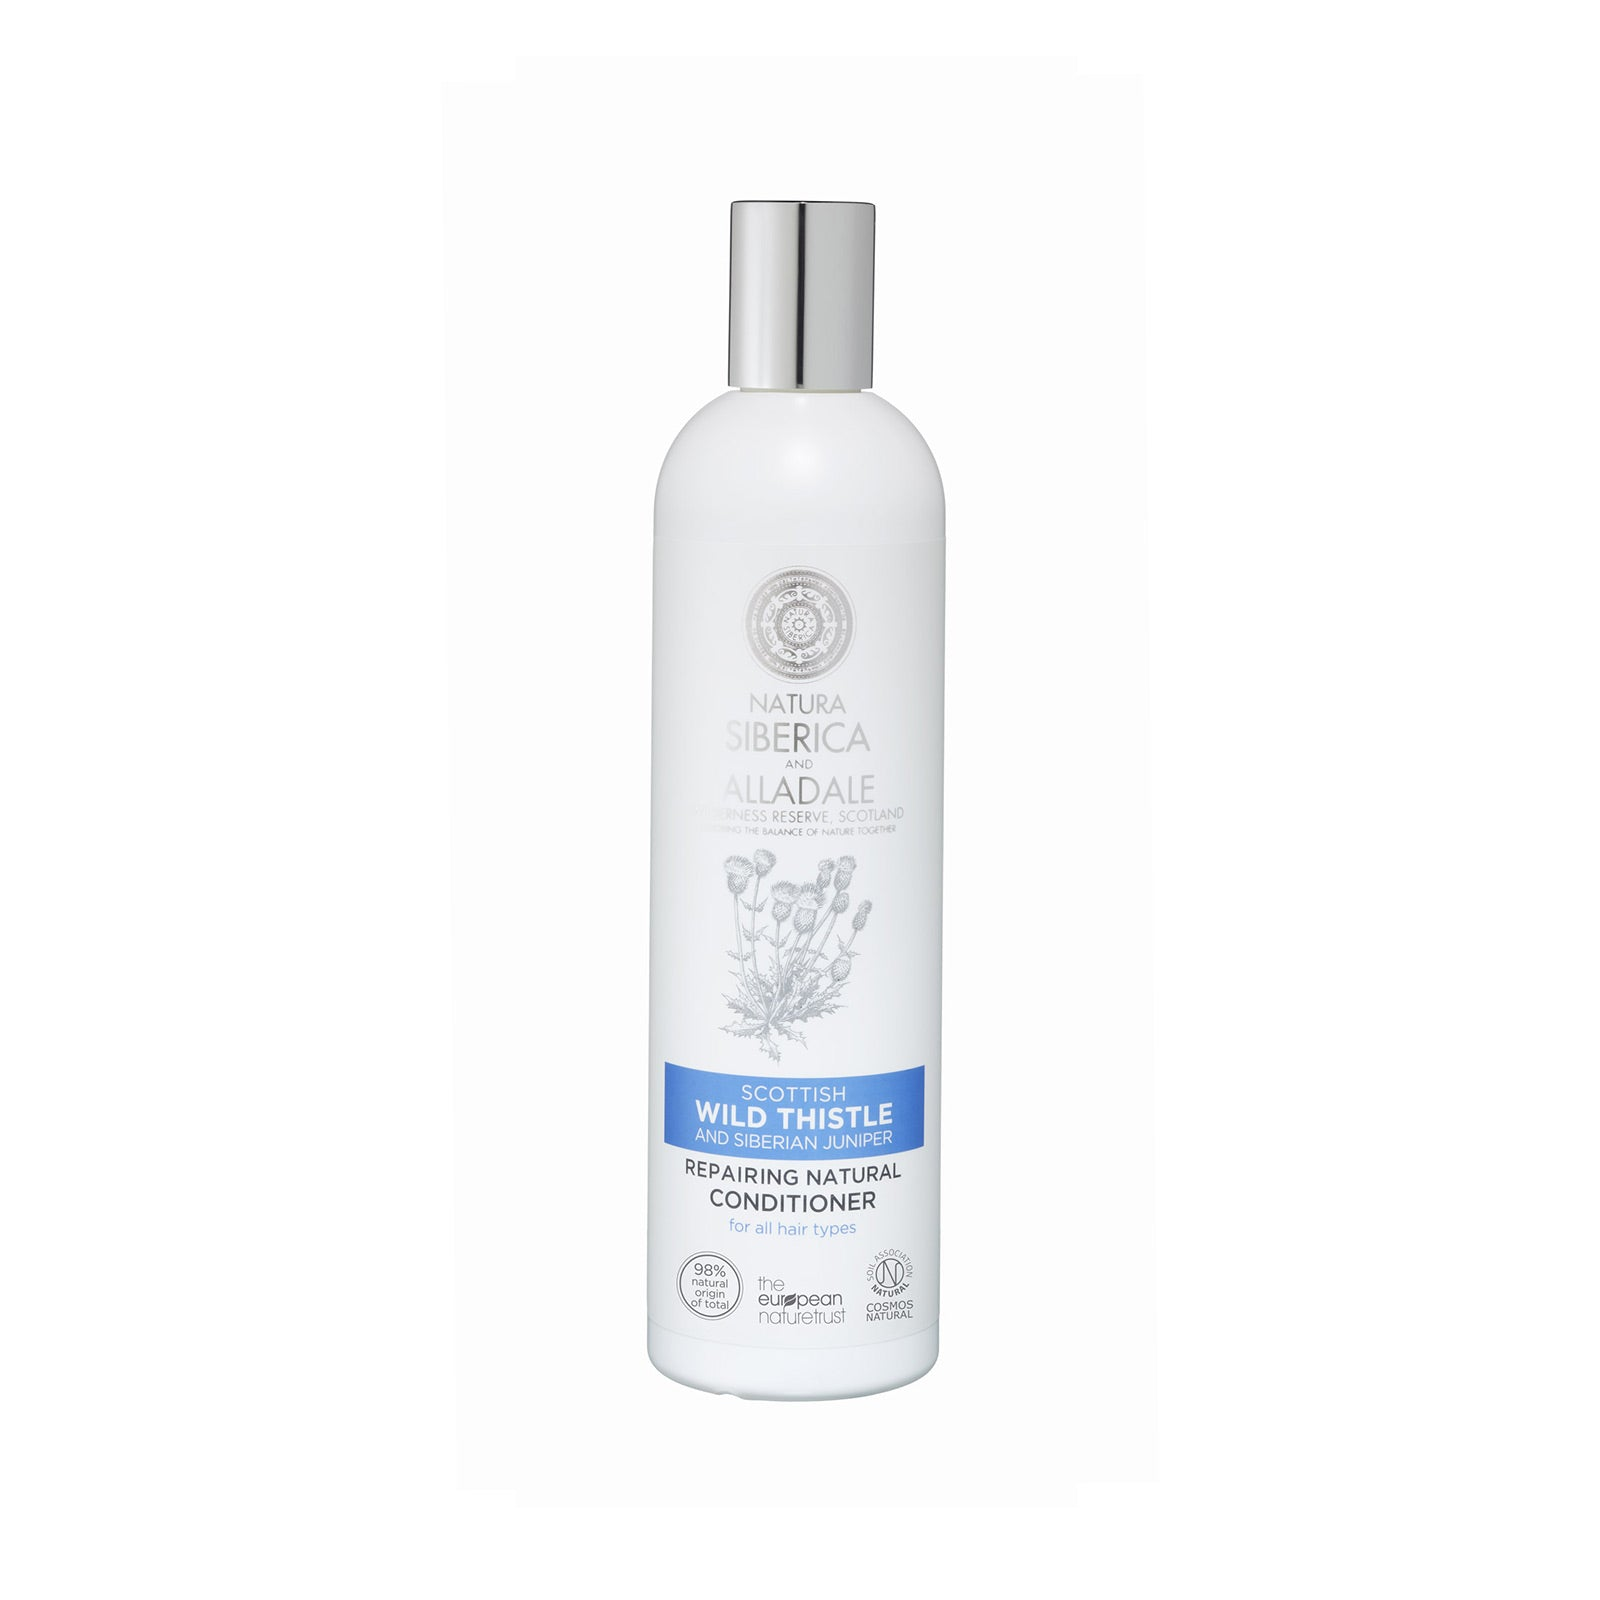 Alladale Repairing Natural Conditioner, 400 ml